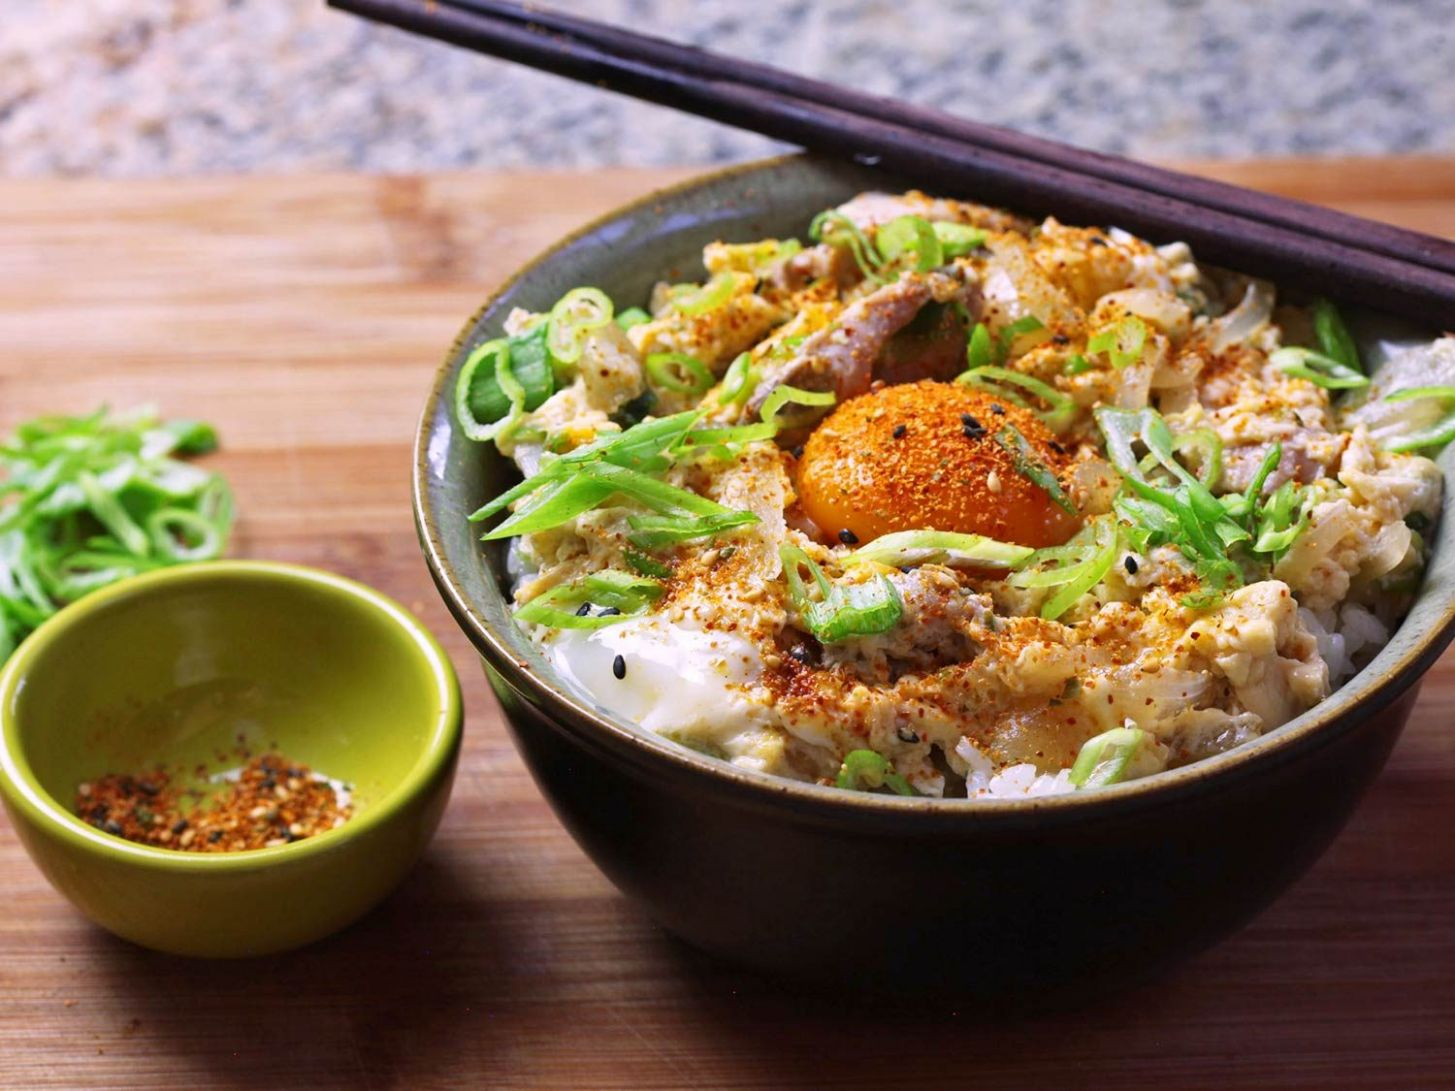 Oyakodon (Japanese Chicken and Egg Rice Bowl) Recipe - Cooking Recipes Japanese Food